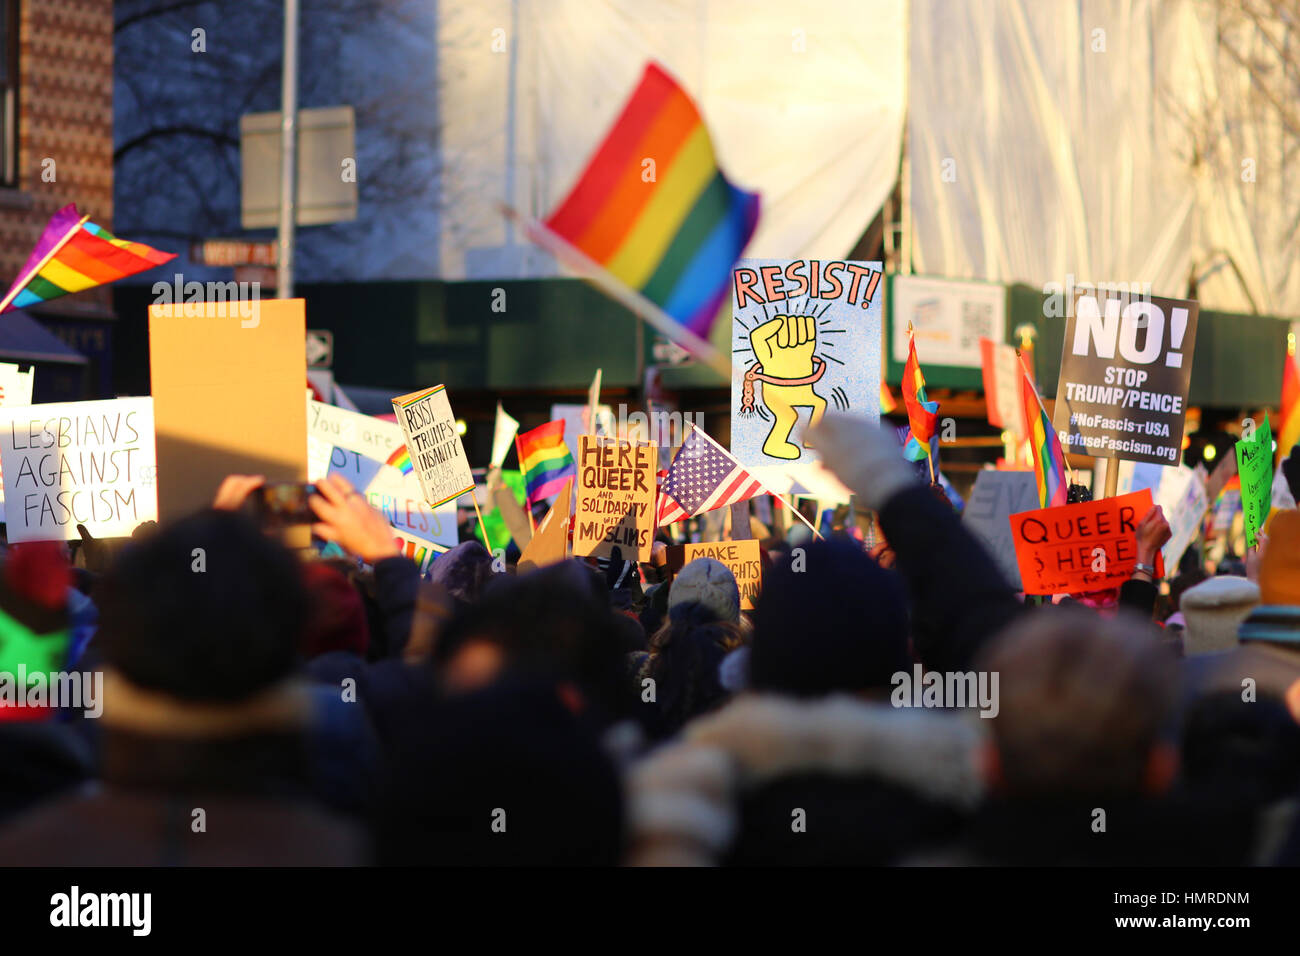 New York, United States. 04th Feb, 2017. New York, USA. 4th February, 2017. Demonstrators at the LGBT Solidary rally - Stock Image